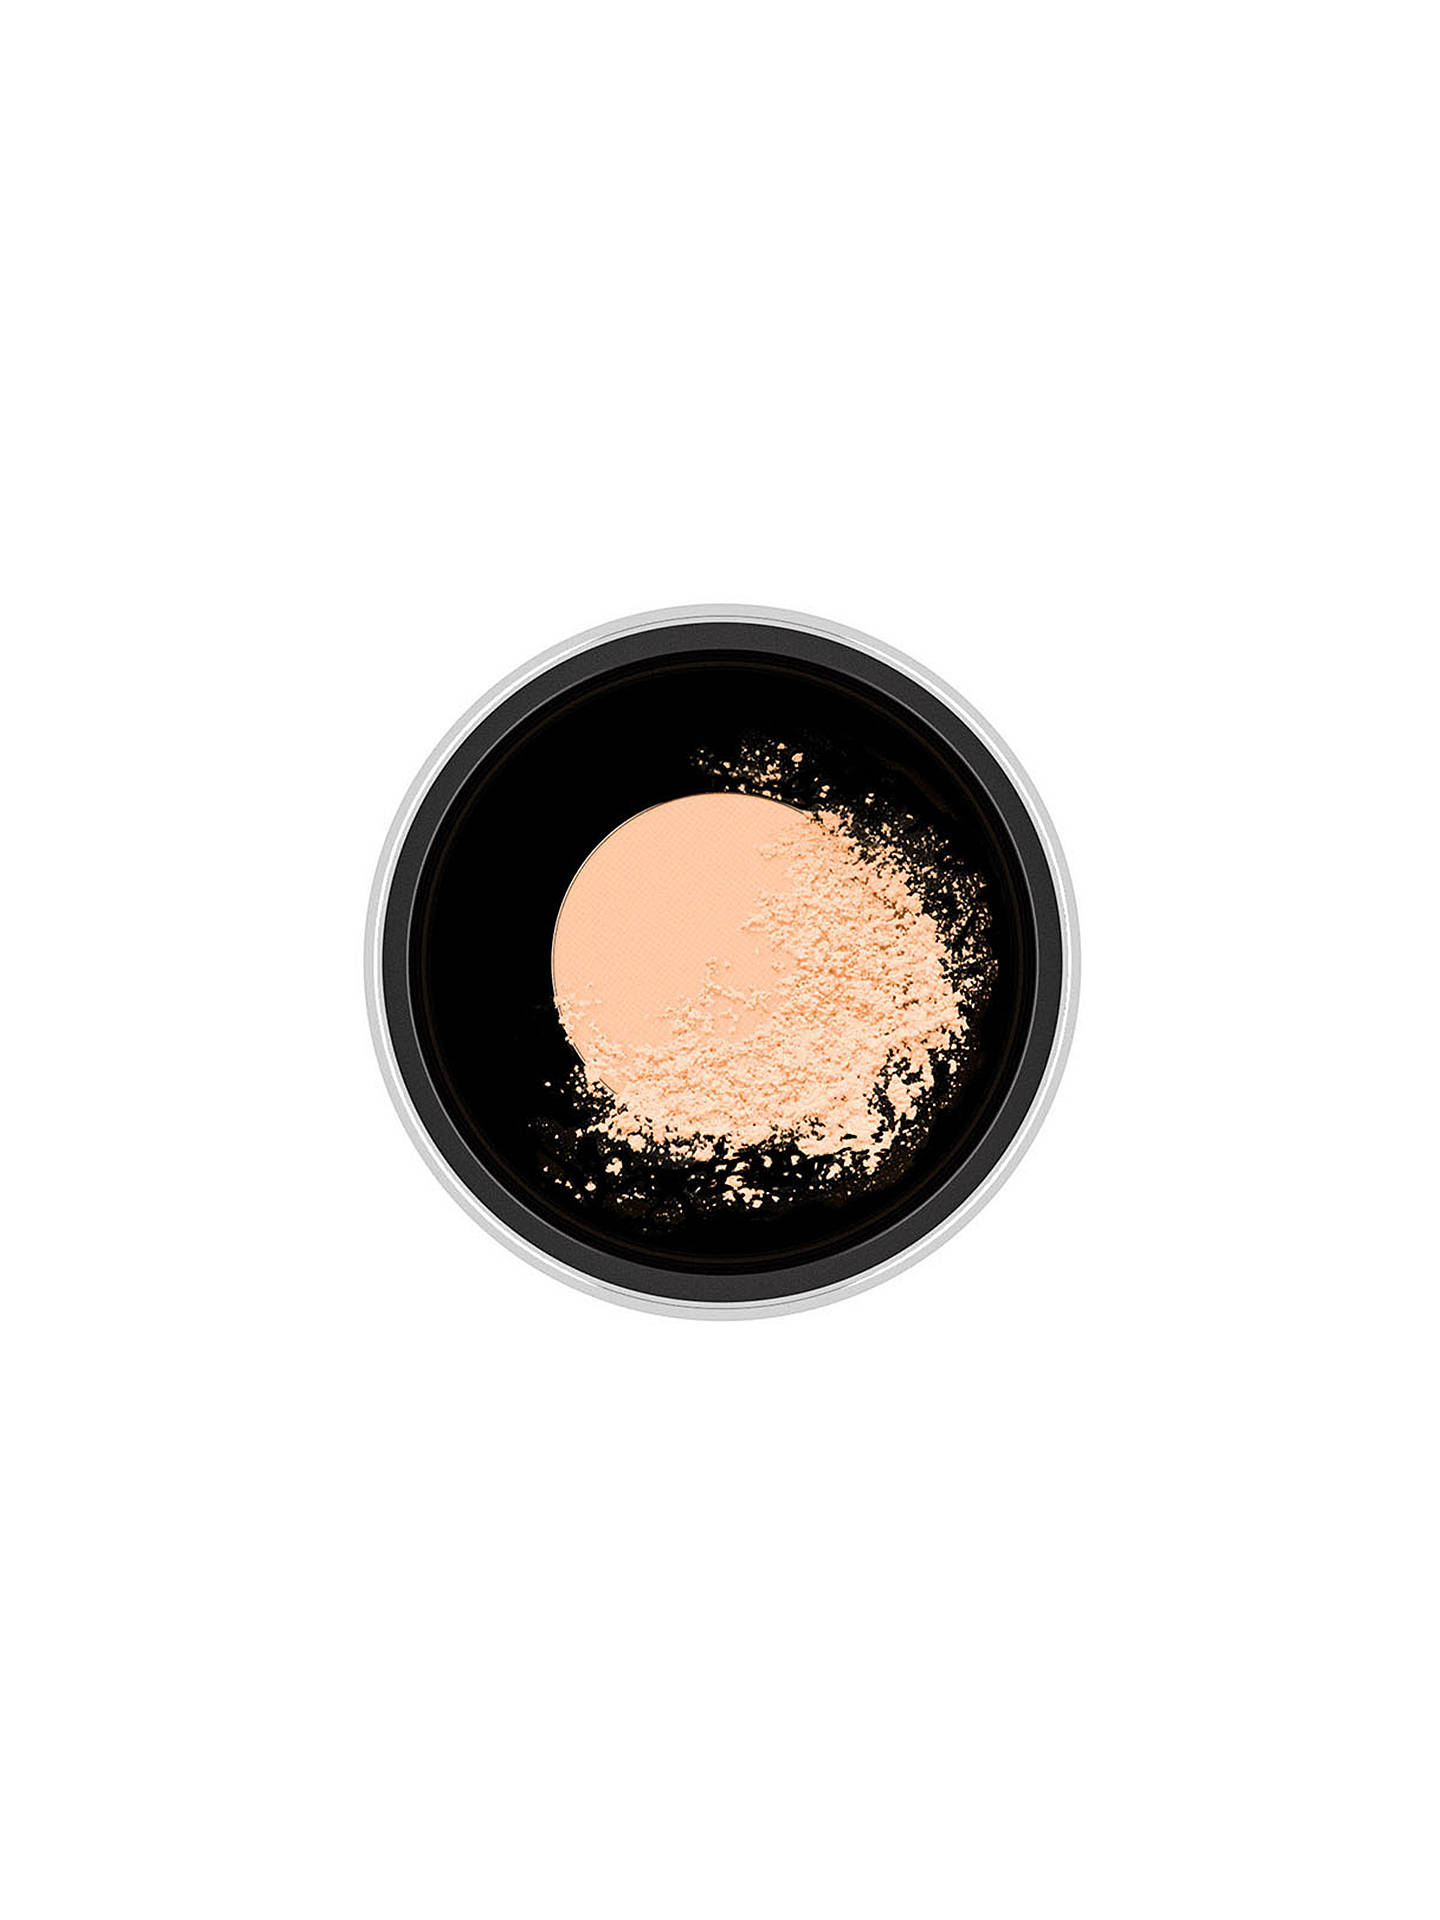 BuyMAC Studio Fix Perfecting Powder, Light Online at johnlewis.com